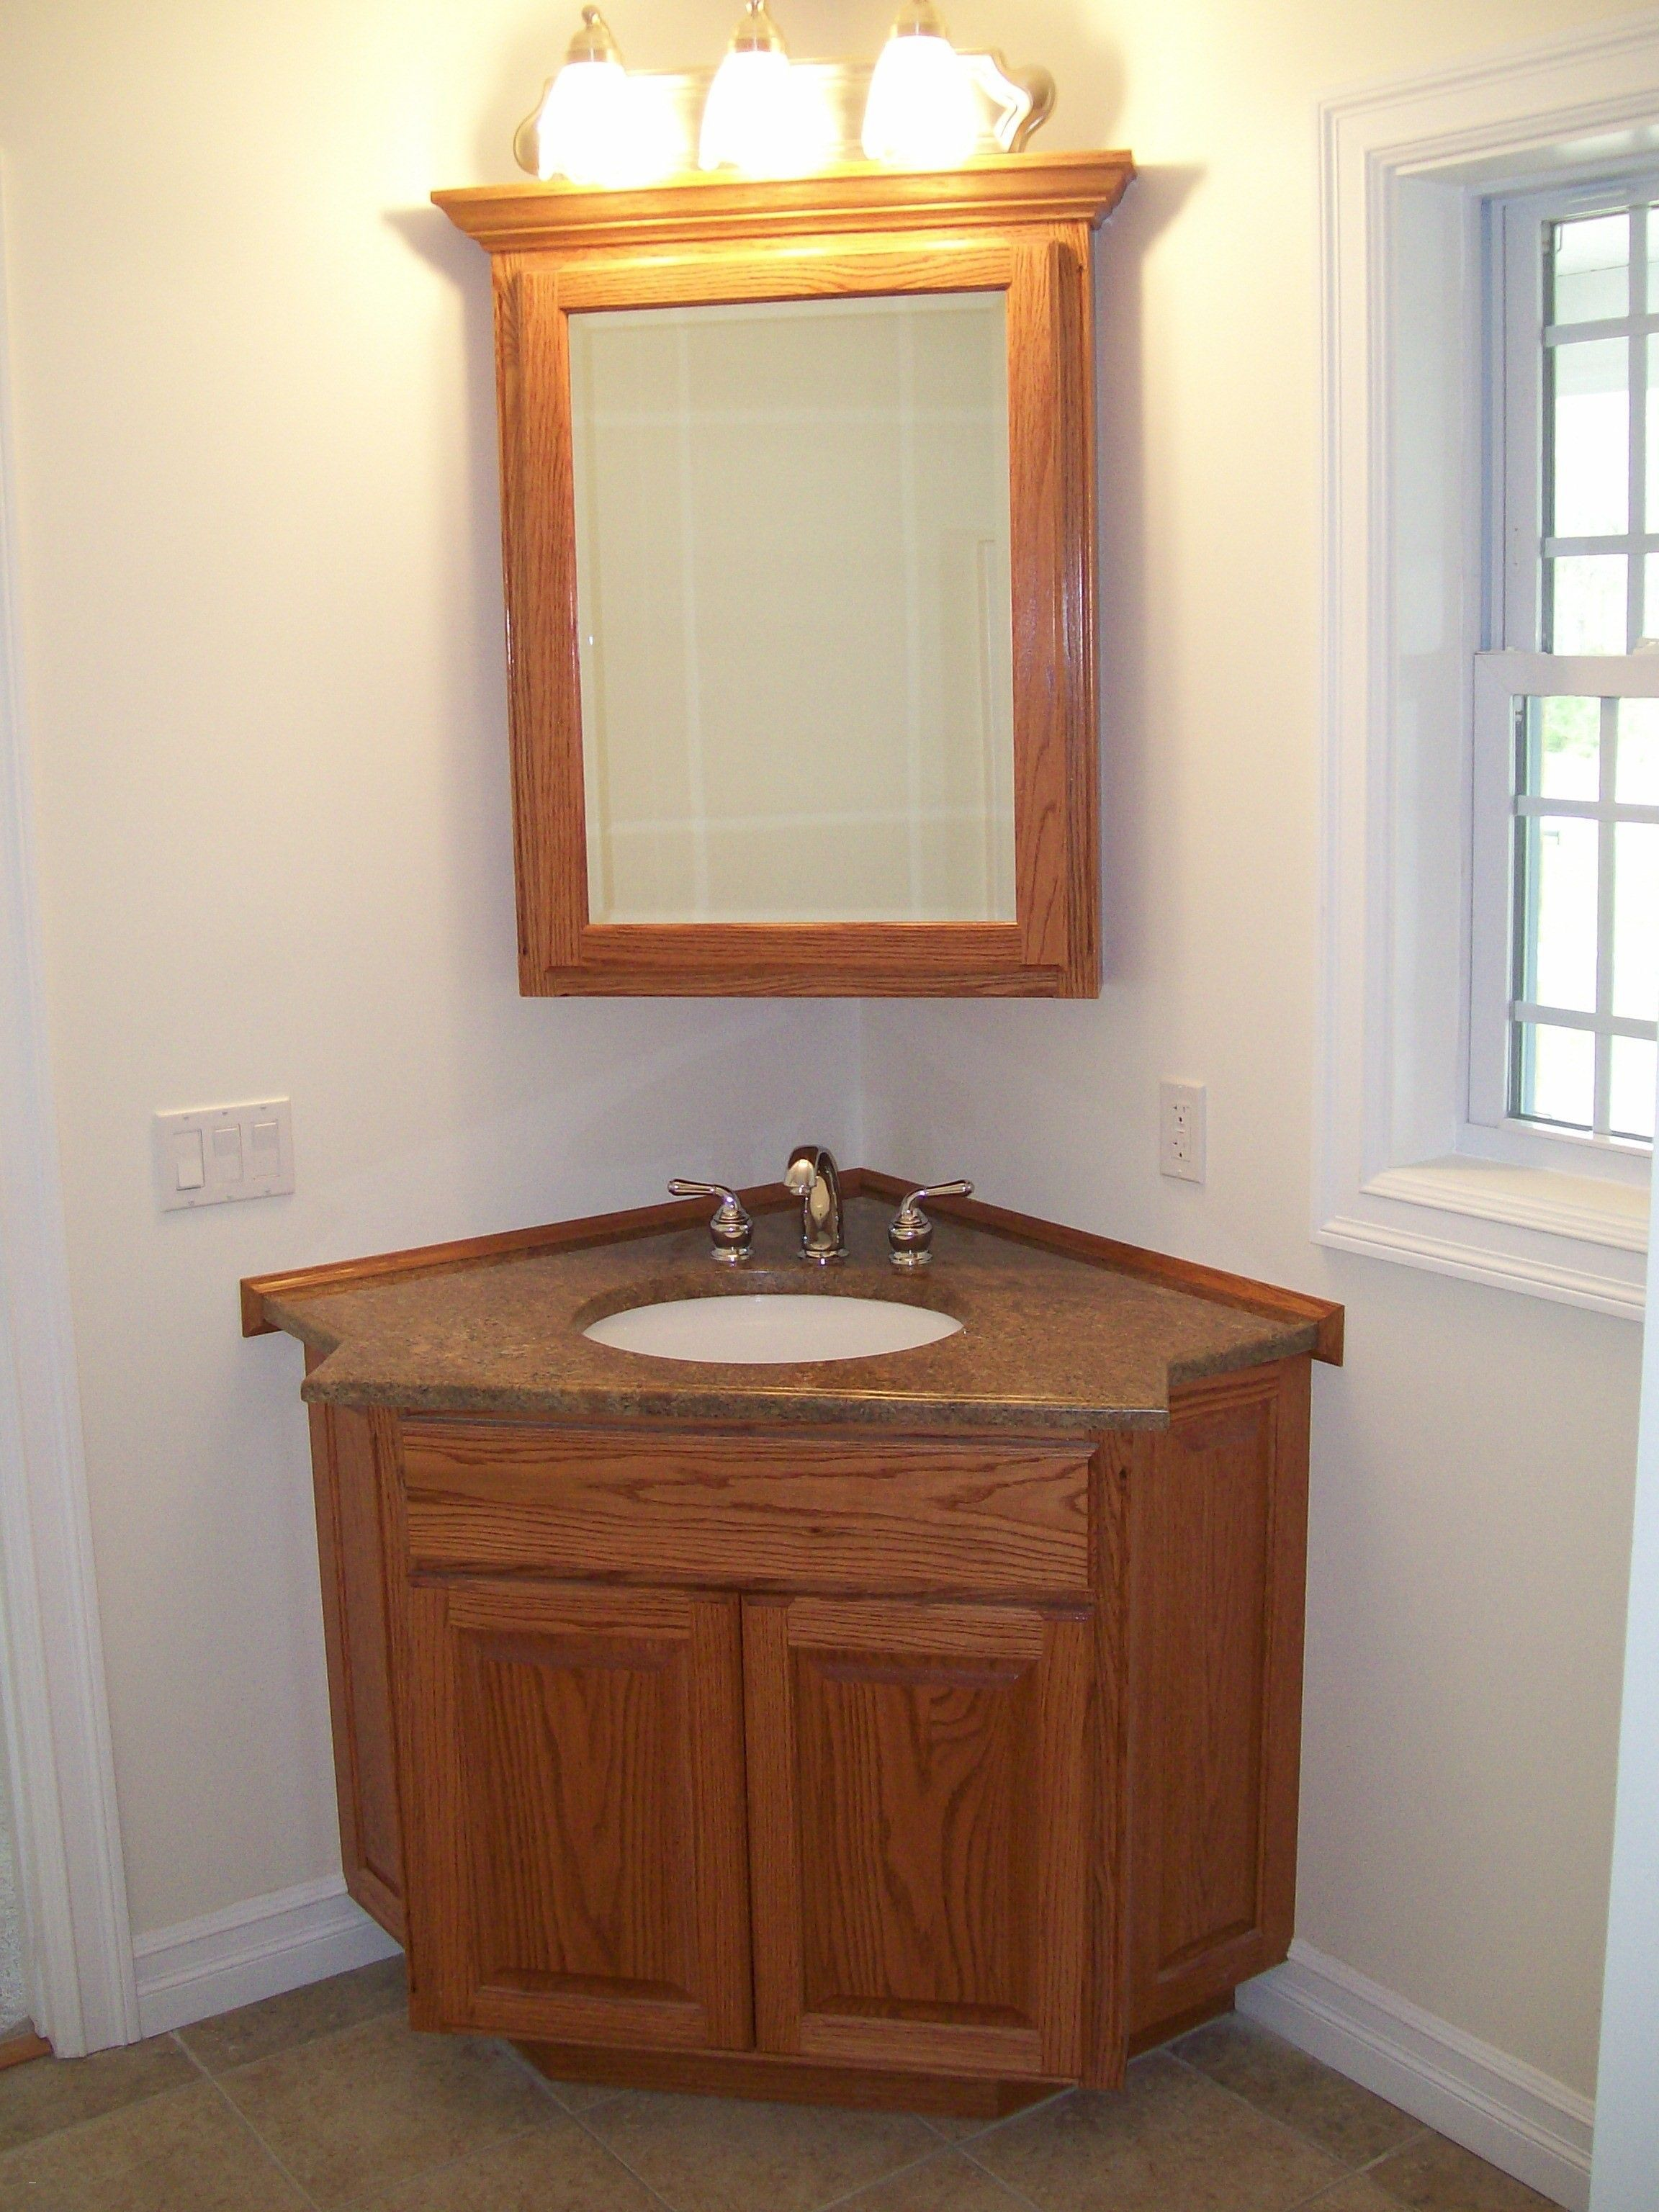 Bathroom Corner Mirror Cabinet Luxury Oak Bathroom Wall Cabinets Luxurybathroomwallcab Small Bathroom Vanities Bathroom Vanities For Sale Corner Sink Bathroom